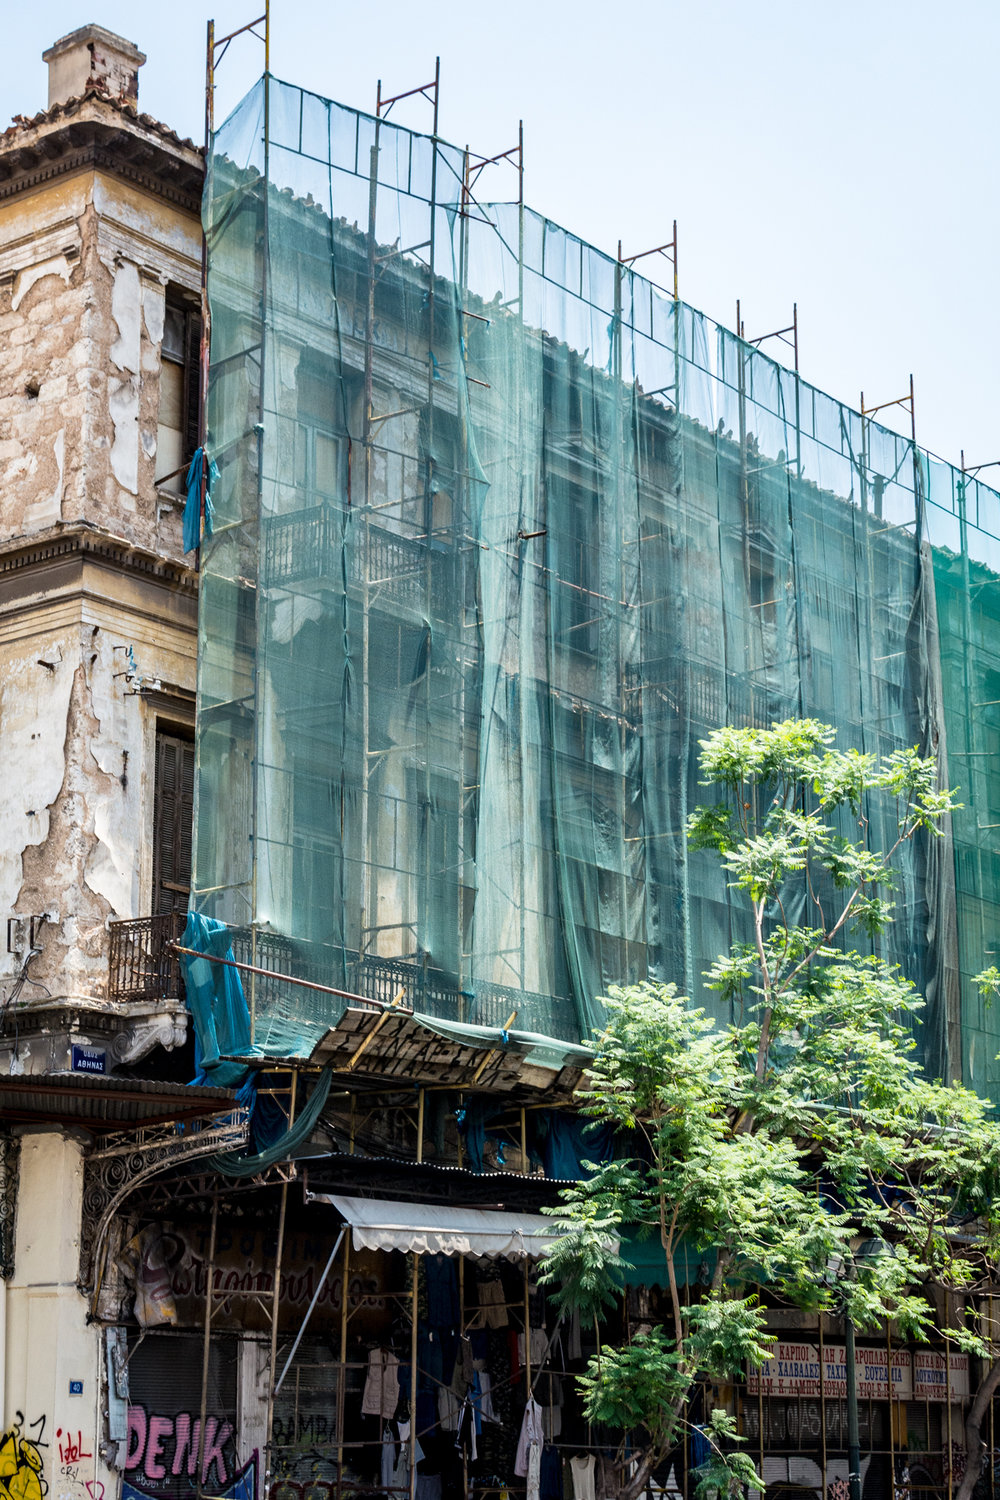 Scaffolding on building, meant to protect pedestrians from debris.